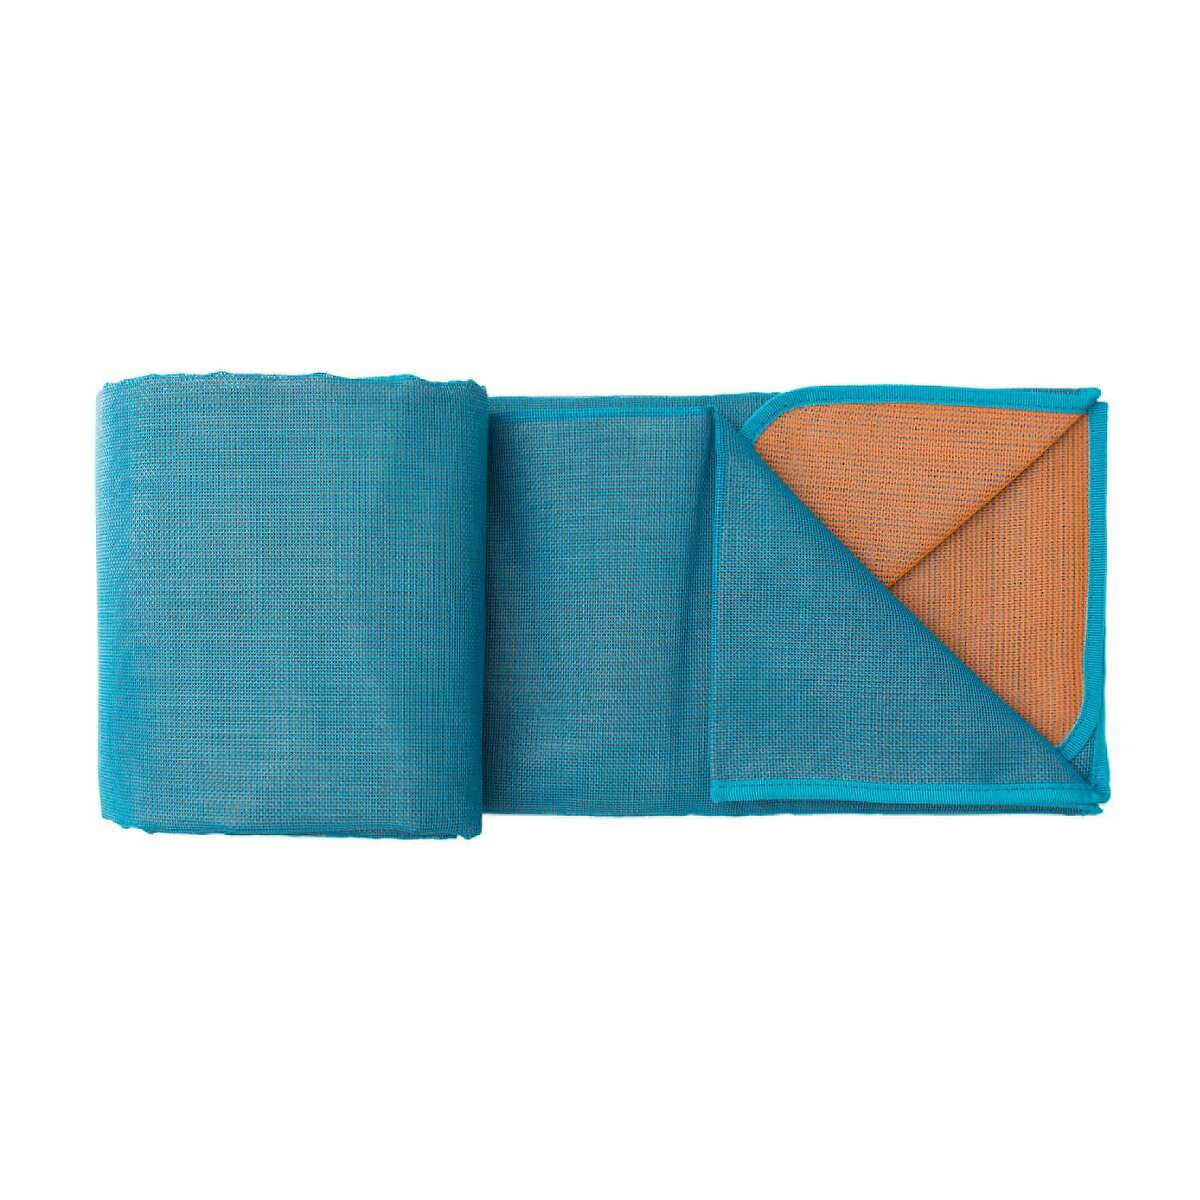 The CGear Comfort Sand-Free Mat allows sand to filter below it but not rise through it.